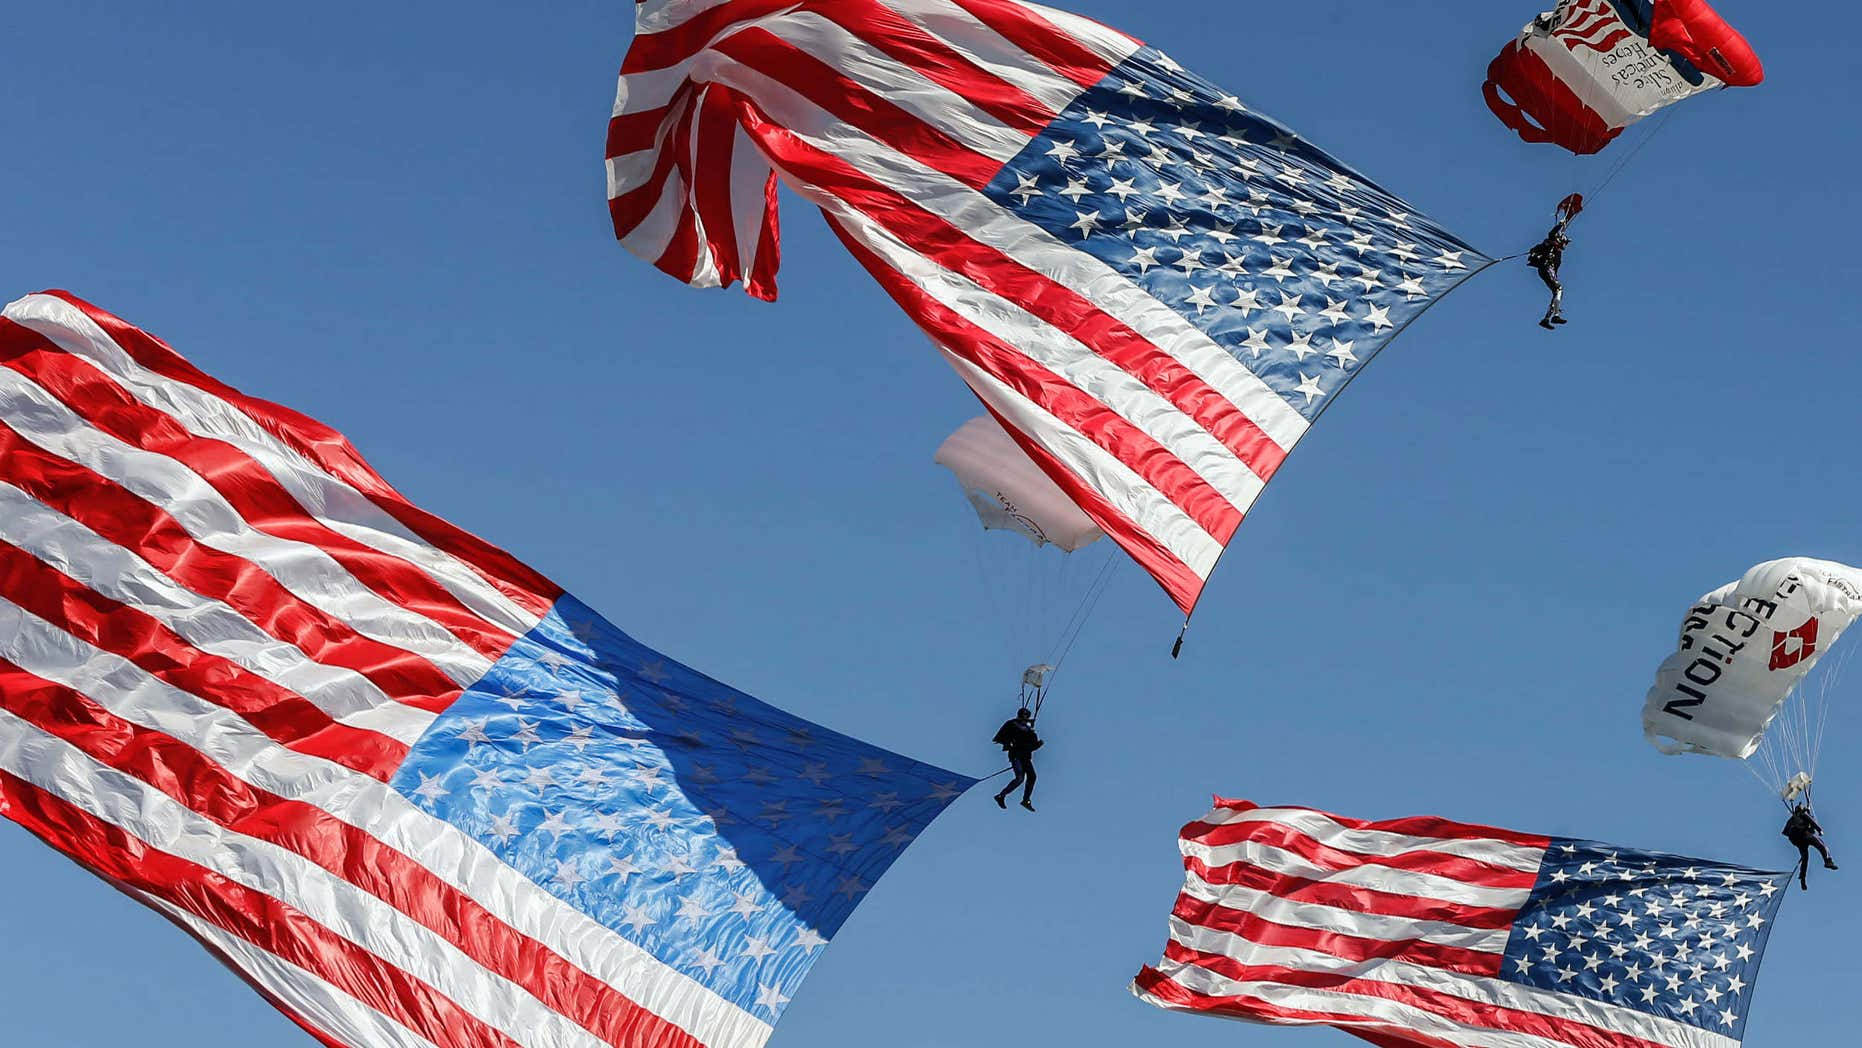 Aug. 21, 2015: Parachuters fly over Lakota West's football field during the funeral service in West Chester, Ohio, for Army Master Sgt. Corey Hood.